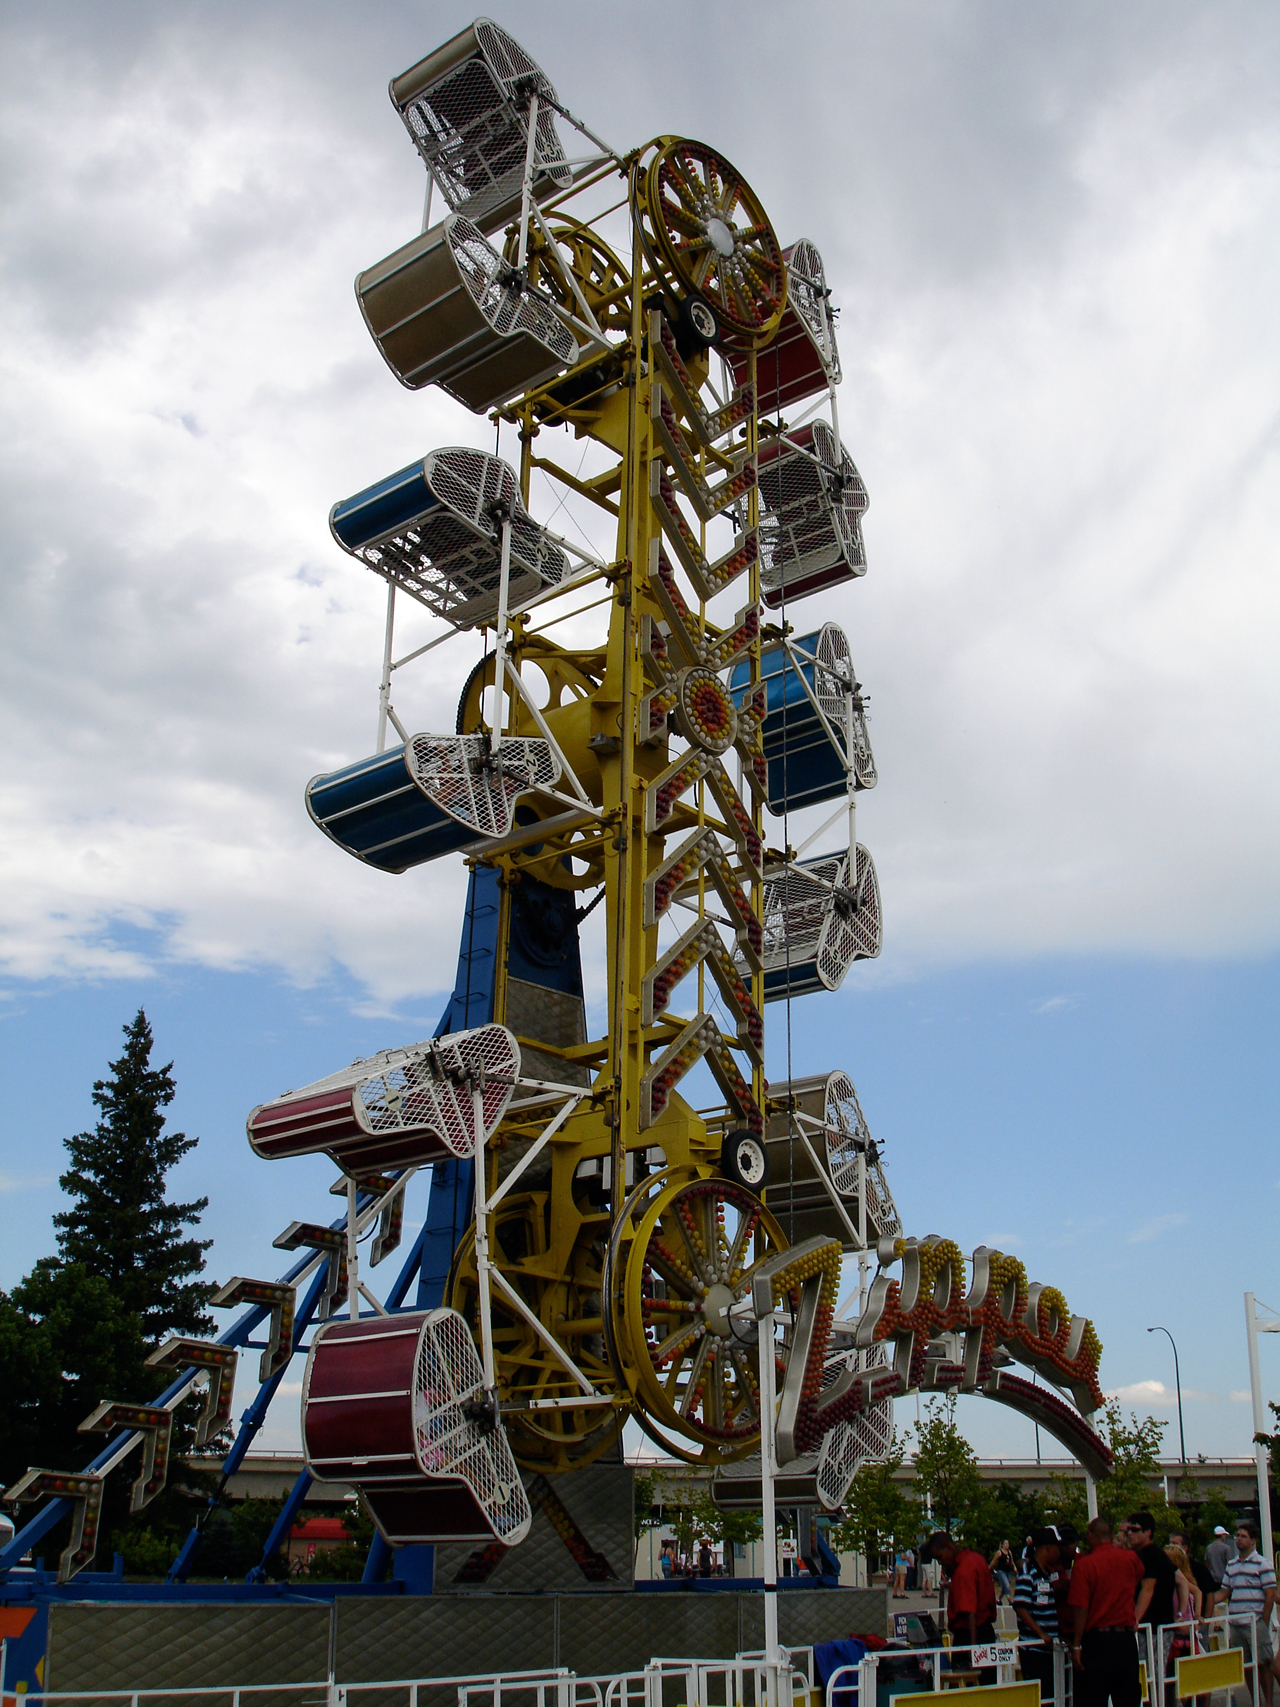 File:Zipper ride vertical position.jpg - Wikimedia Commons